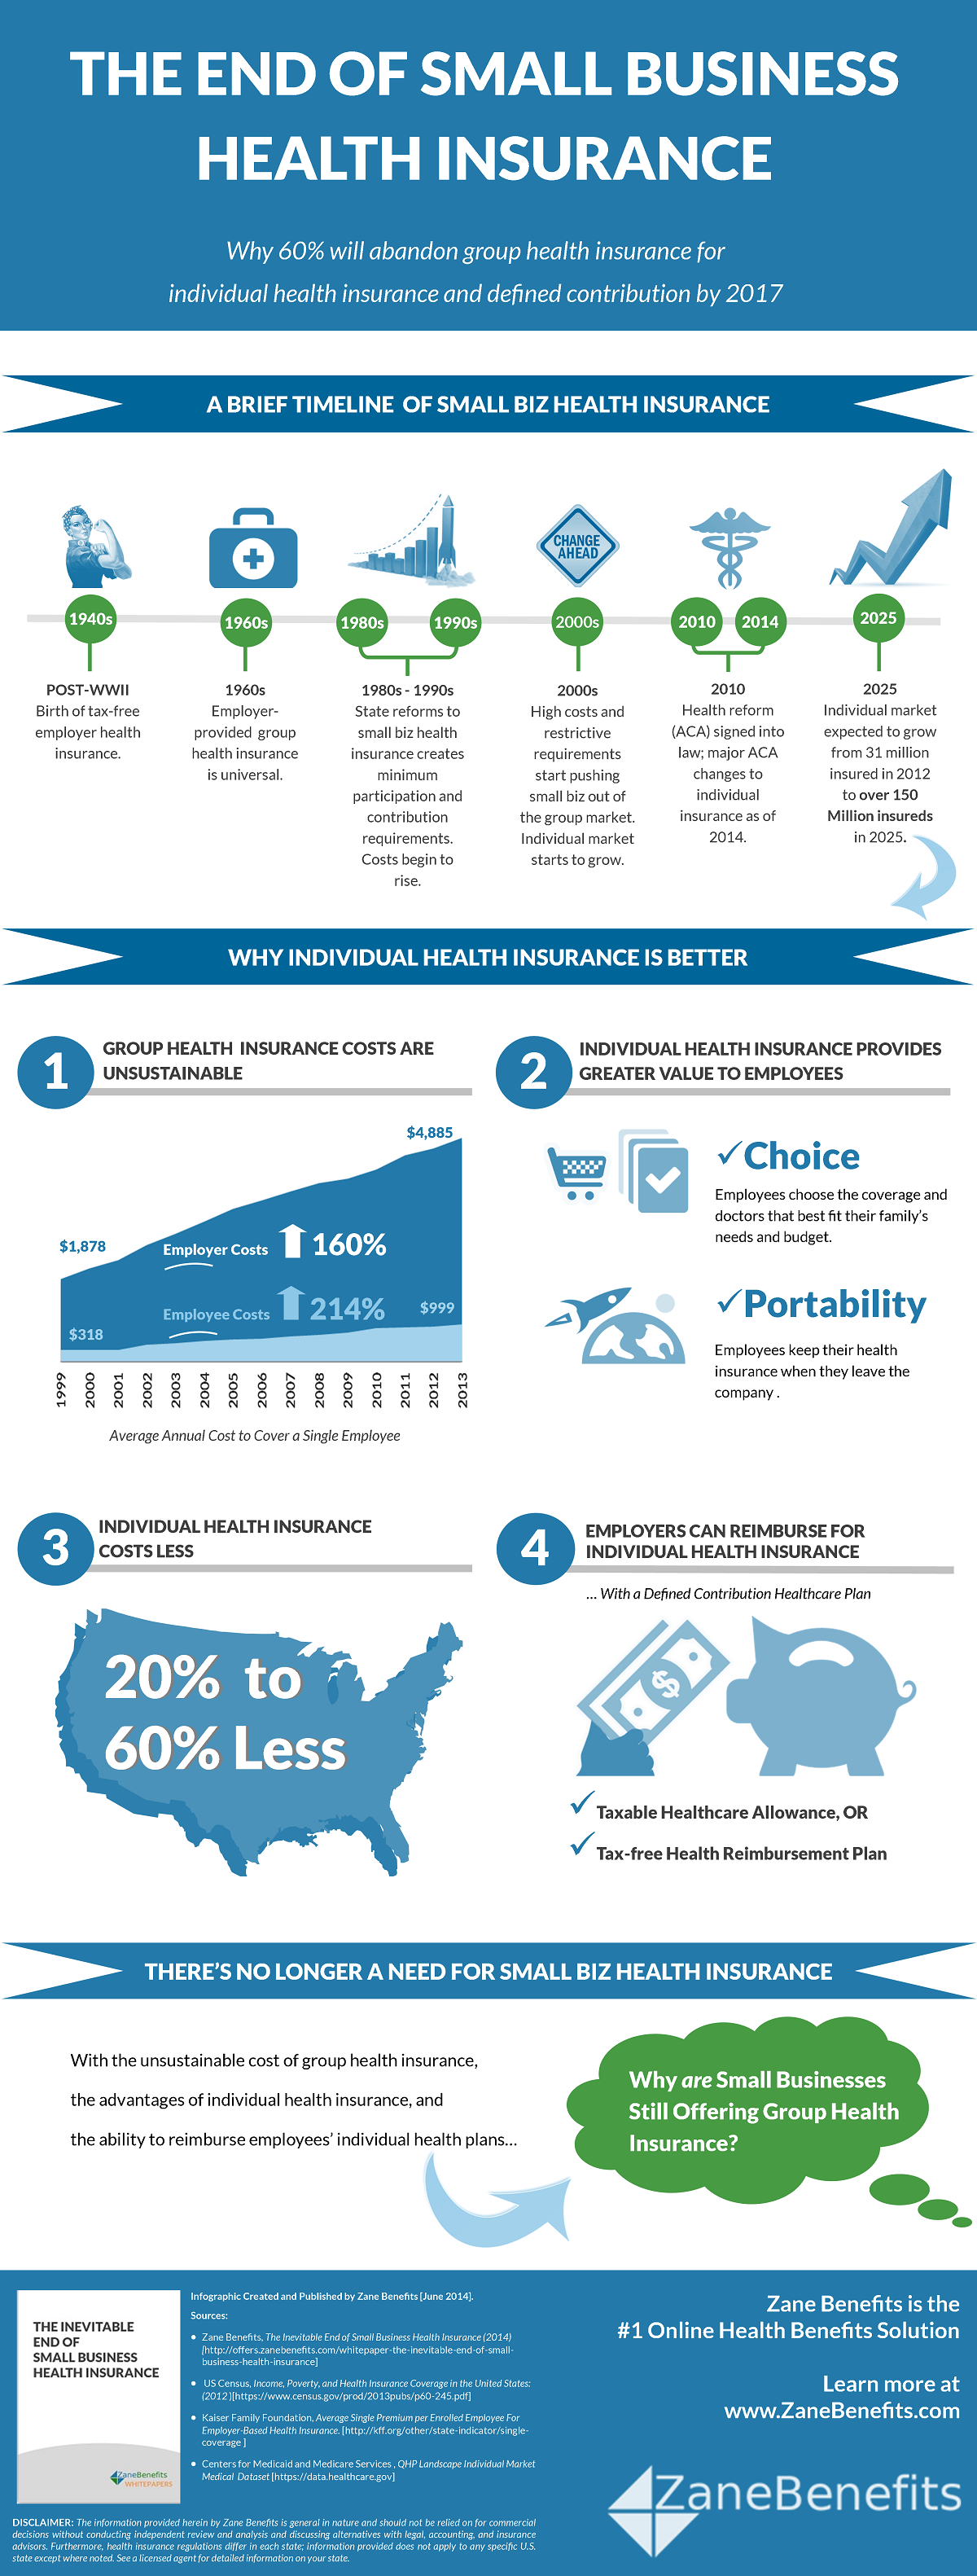 Infographic - The End of Small Business Health Insurance